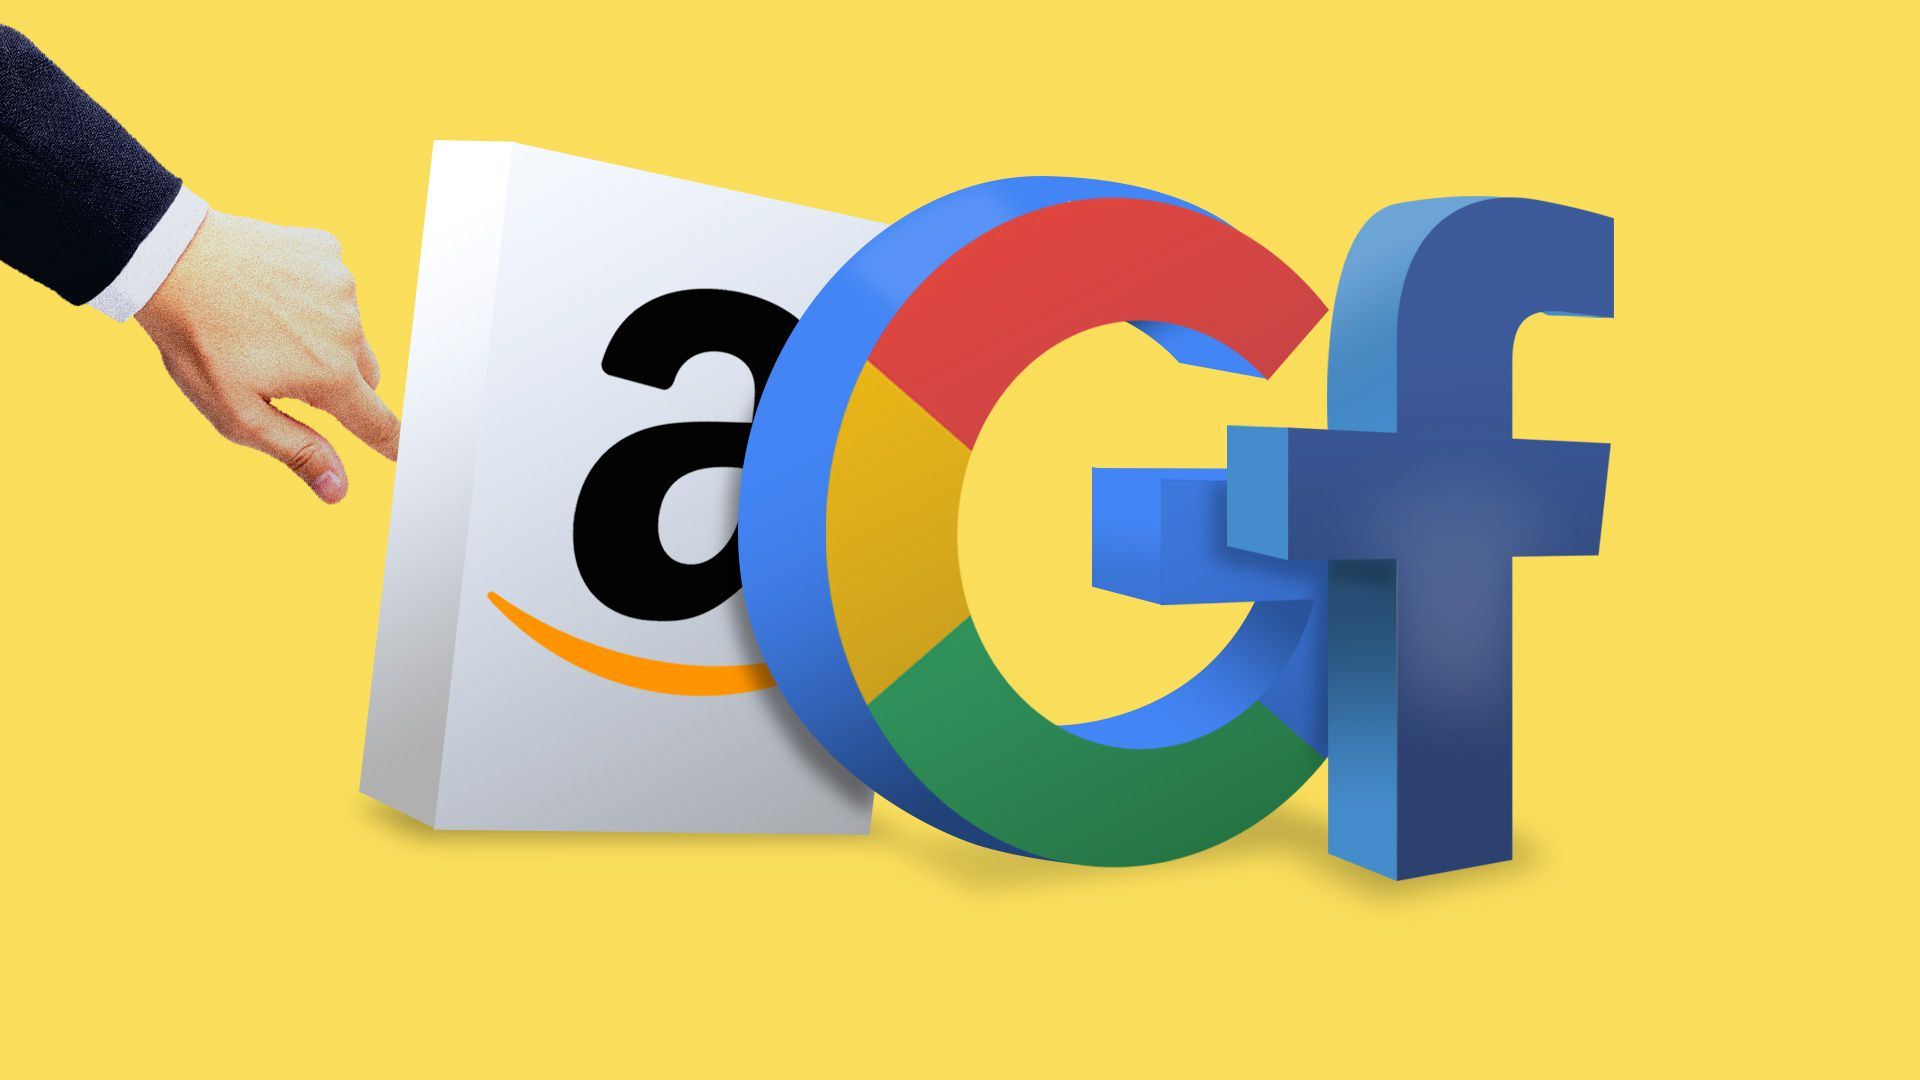 Illustration of a lawyer's hand reaching out to logos of Amazon, Google, Facebook